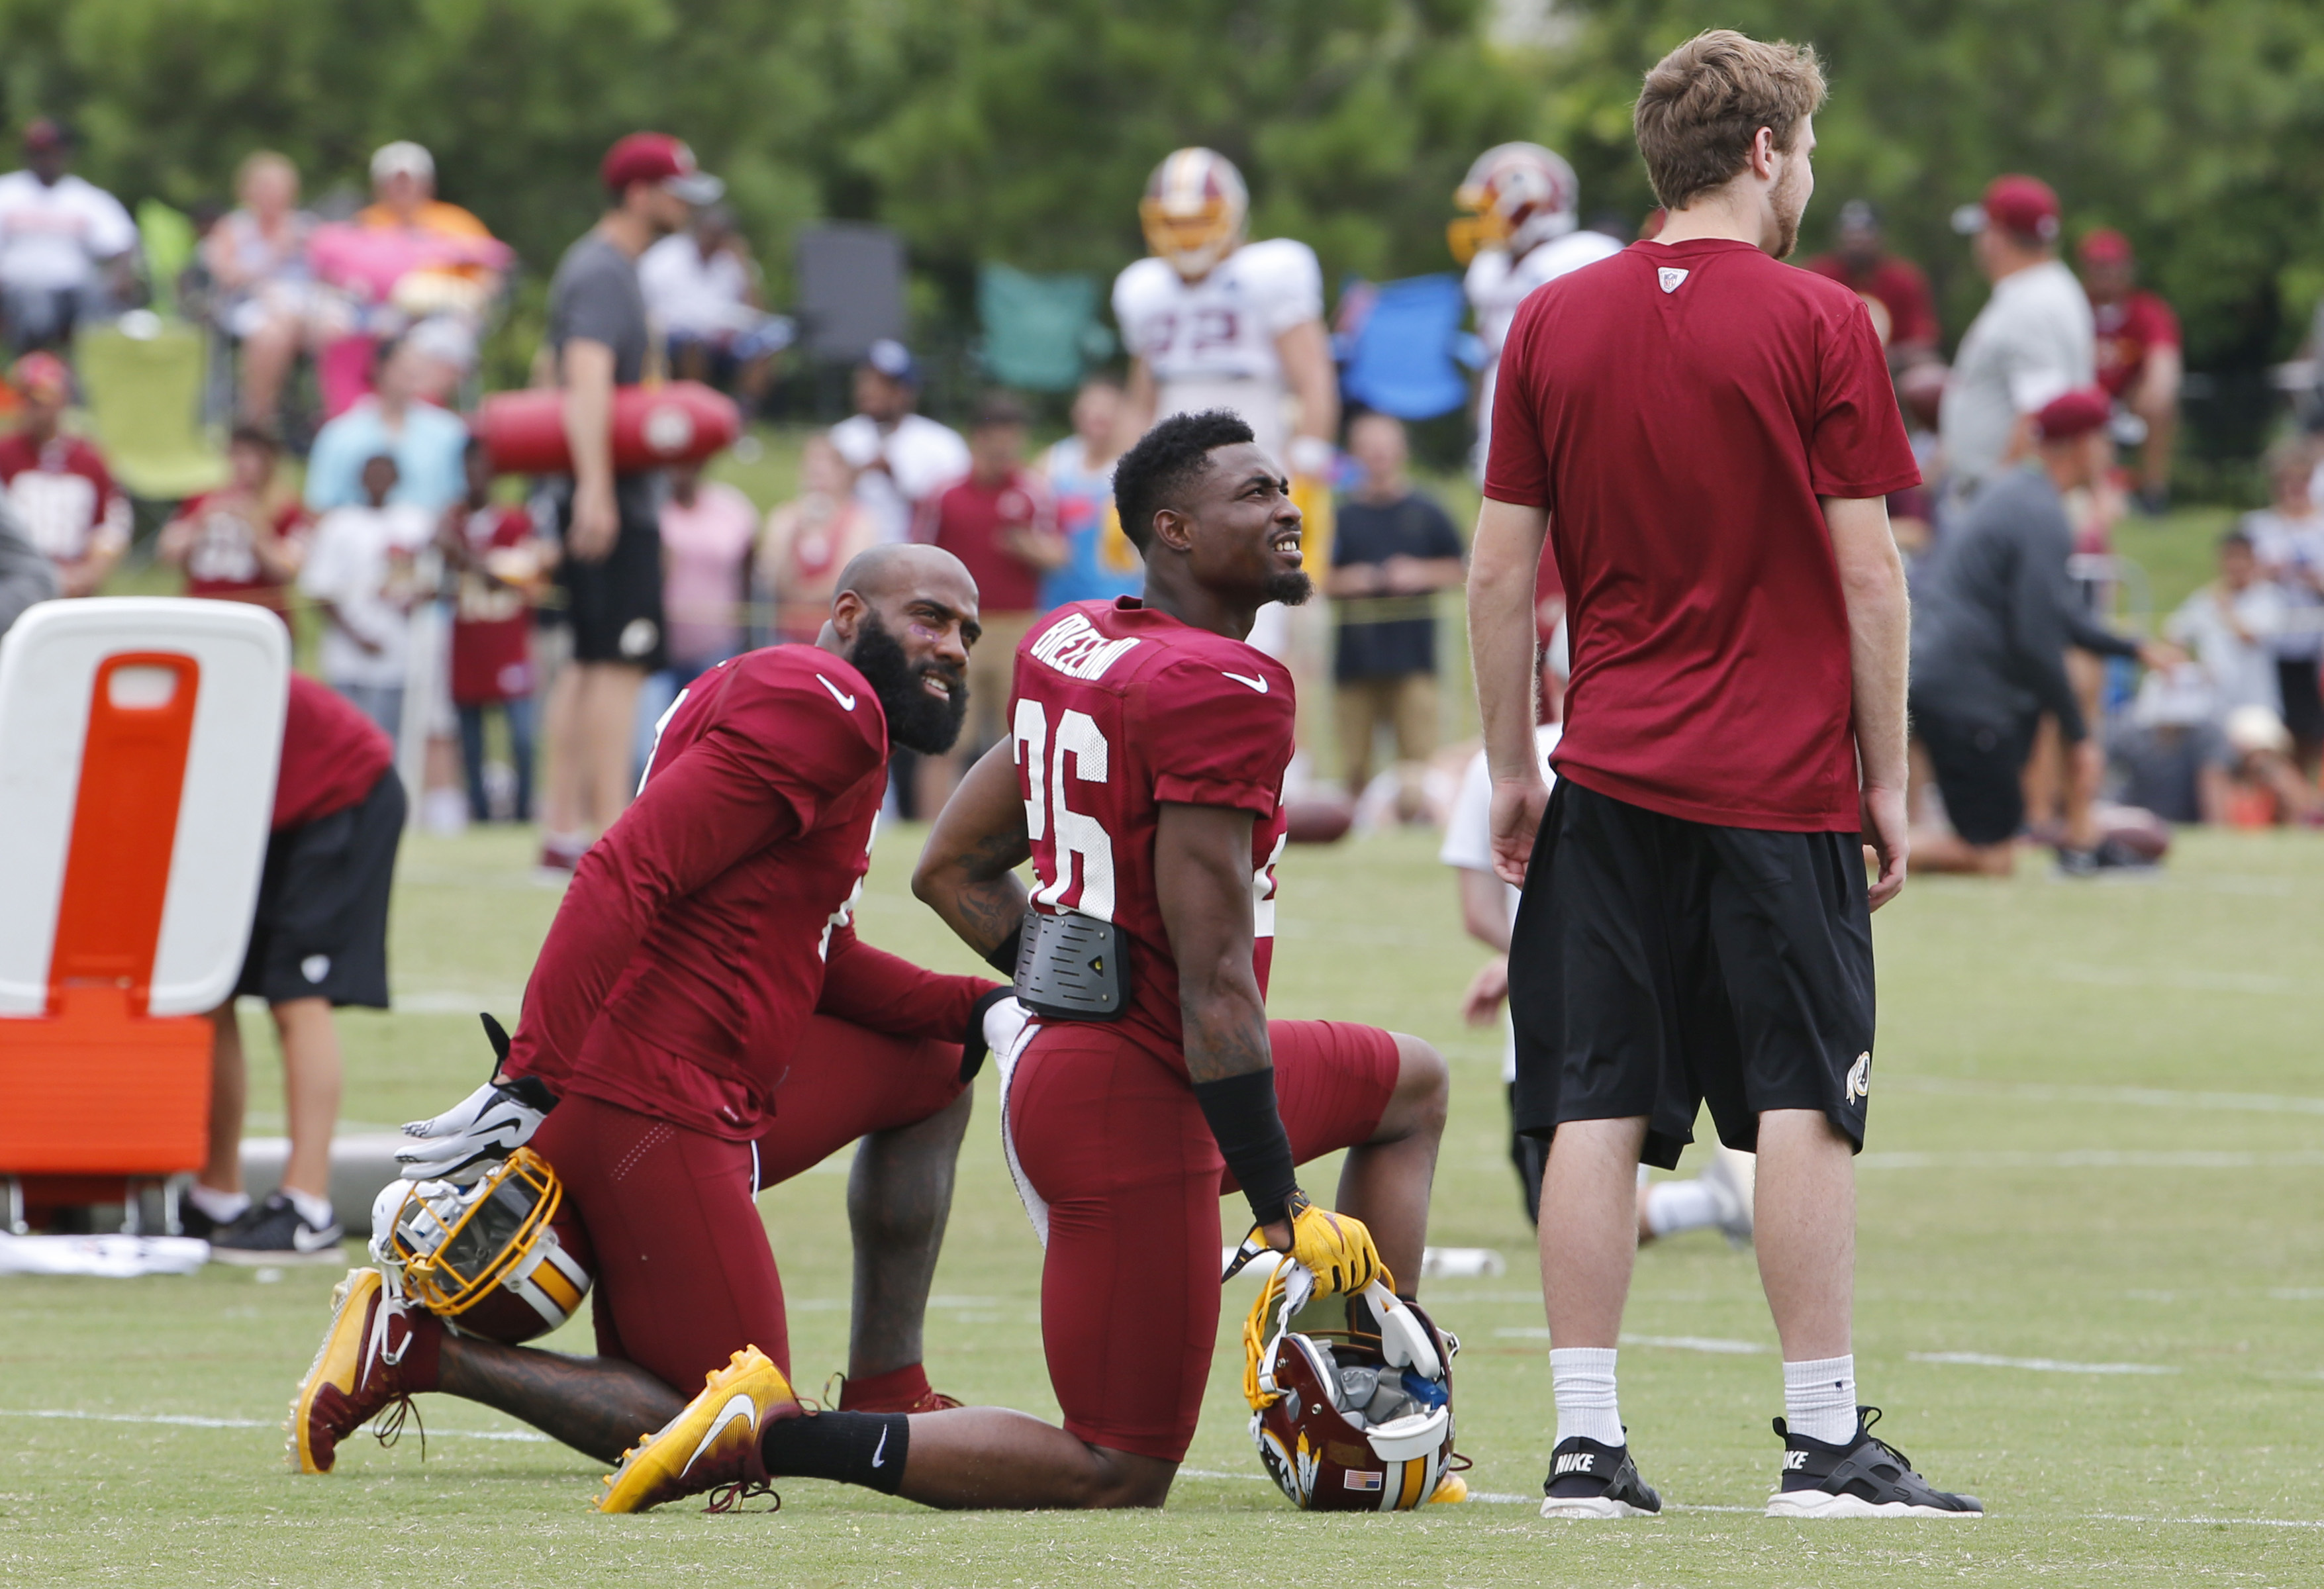 Washington Redskins DeAngelo Hall, left, and Bashaud Breeland, center, talk to a trainer during the afternoon practice at the Washington Redskins NFL football teams training camp in Richmond, Va., Friday, Aug. 5, 2016. (AP Photo/Steve Helber)